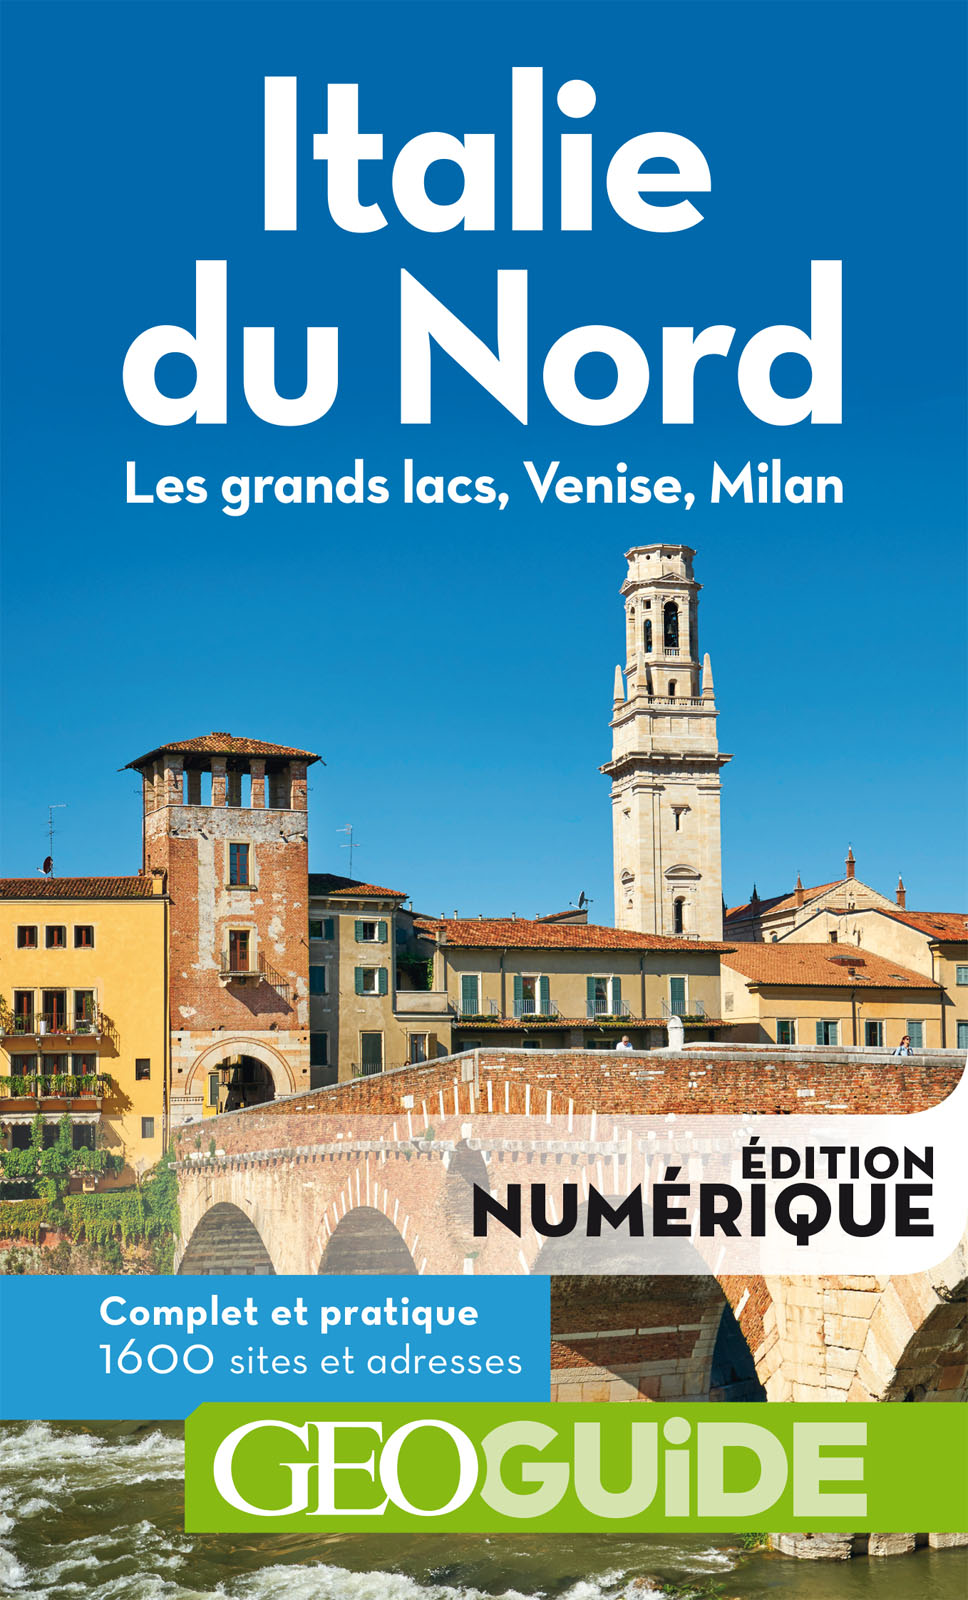 GEOguide Italie du Nord. Les grands lacs, Venise, Milan | Collectif Gallimard Loisirs,